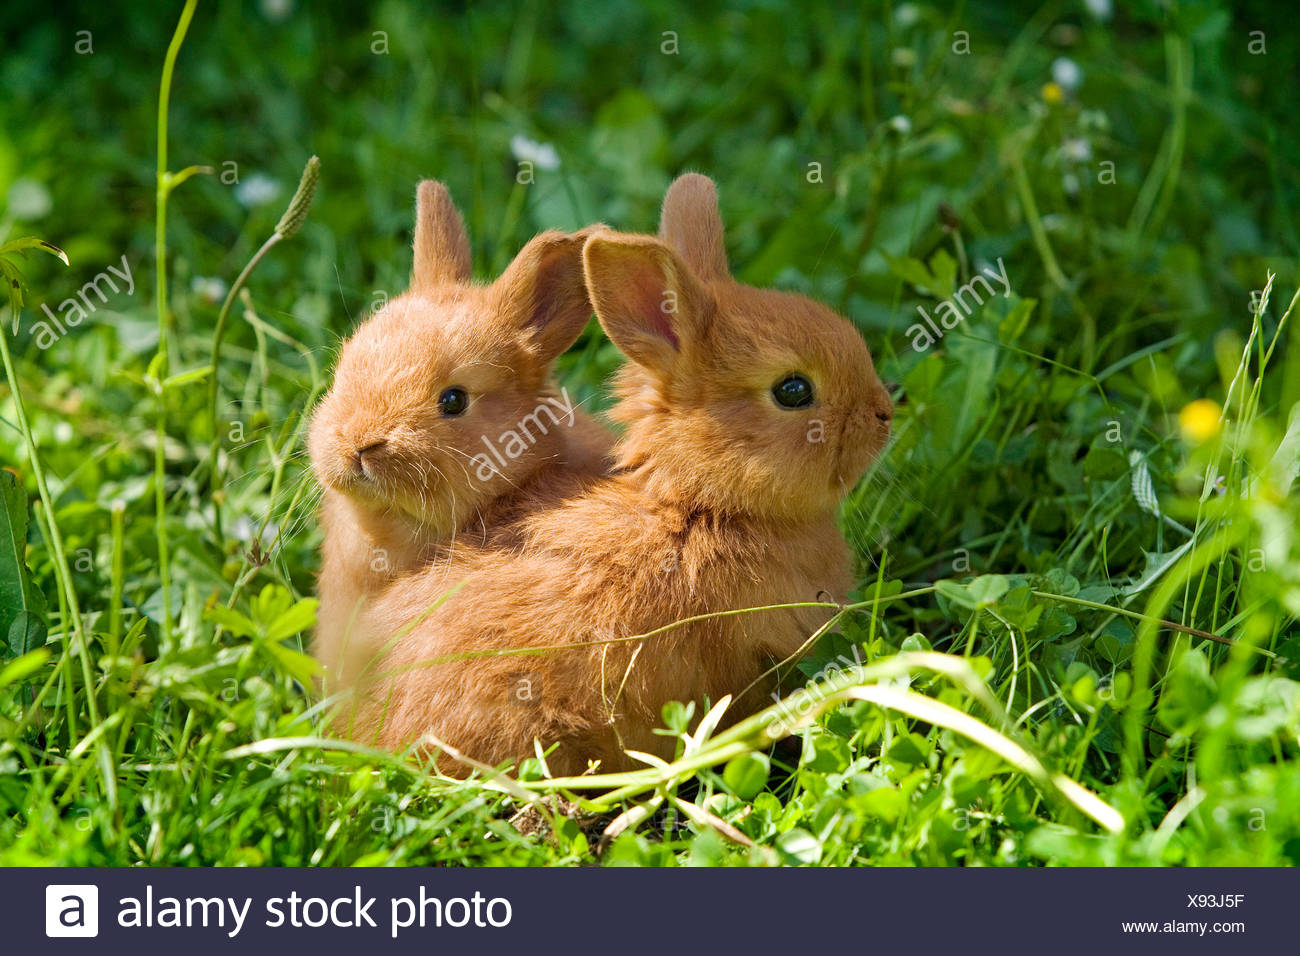 Two Rabbits Stock Photos & Two Rabbits Stock Images - Alamy